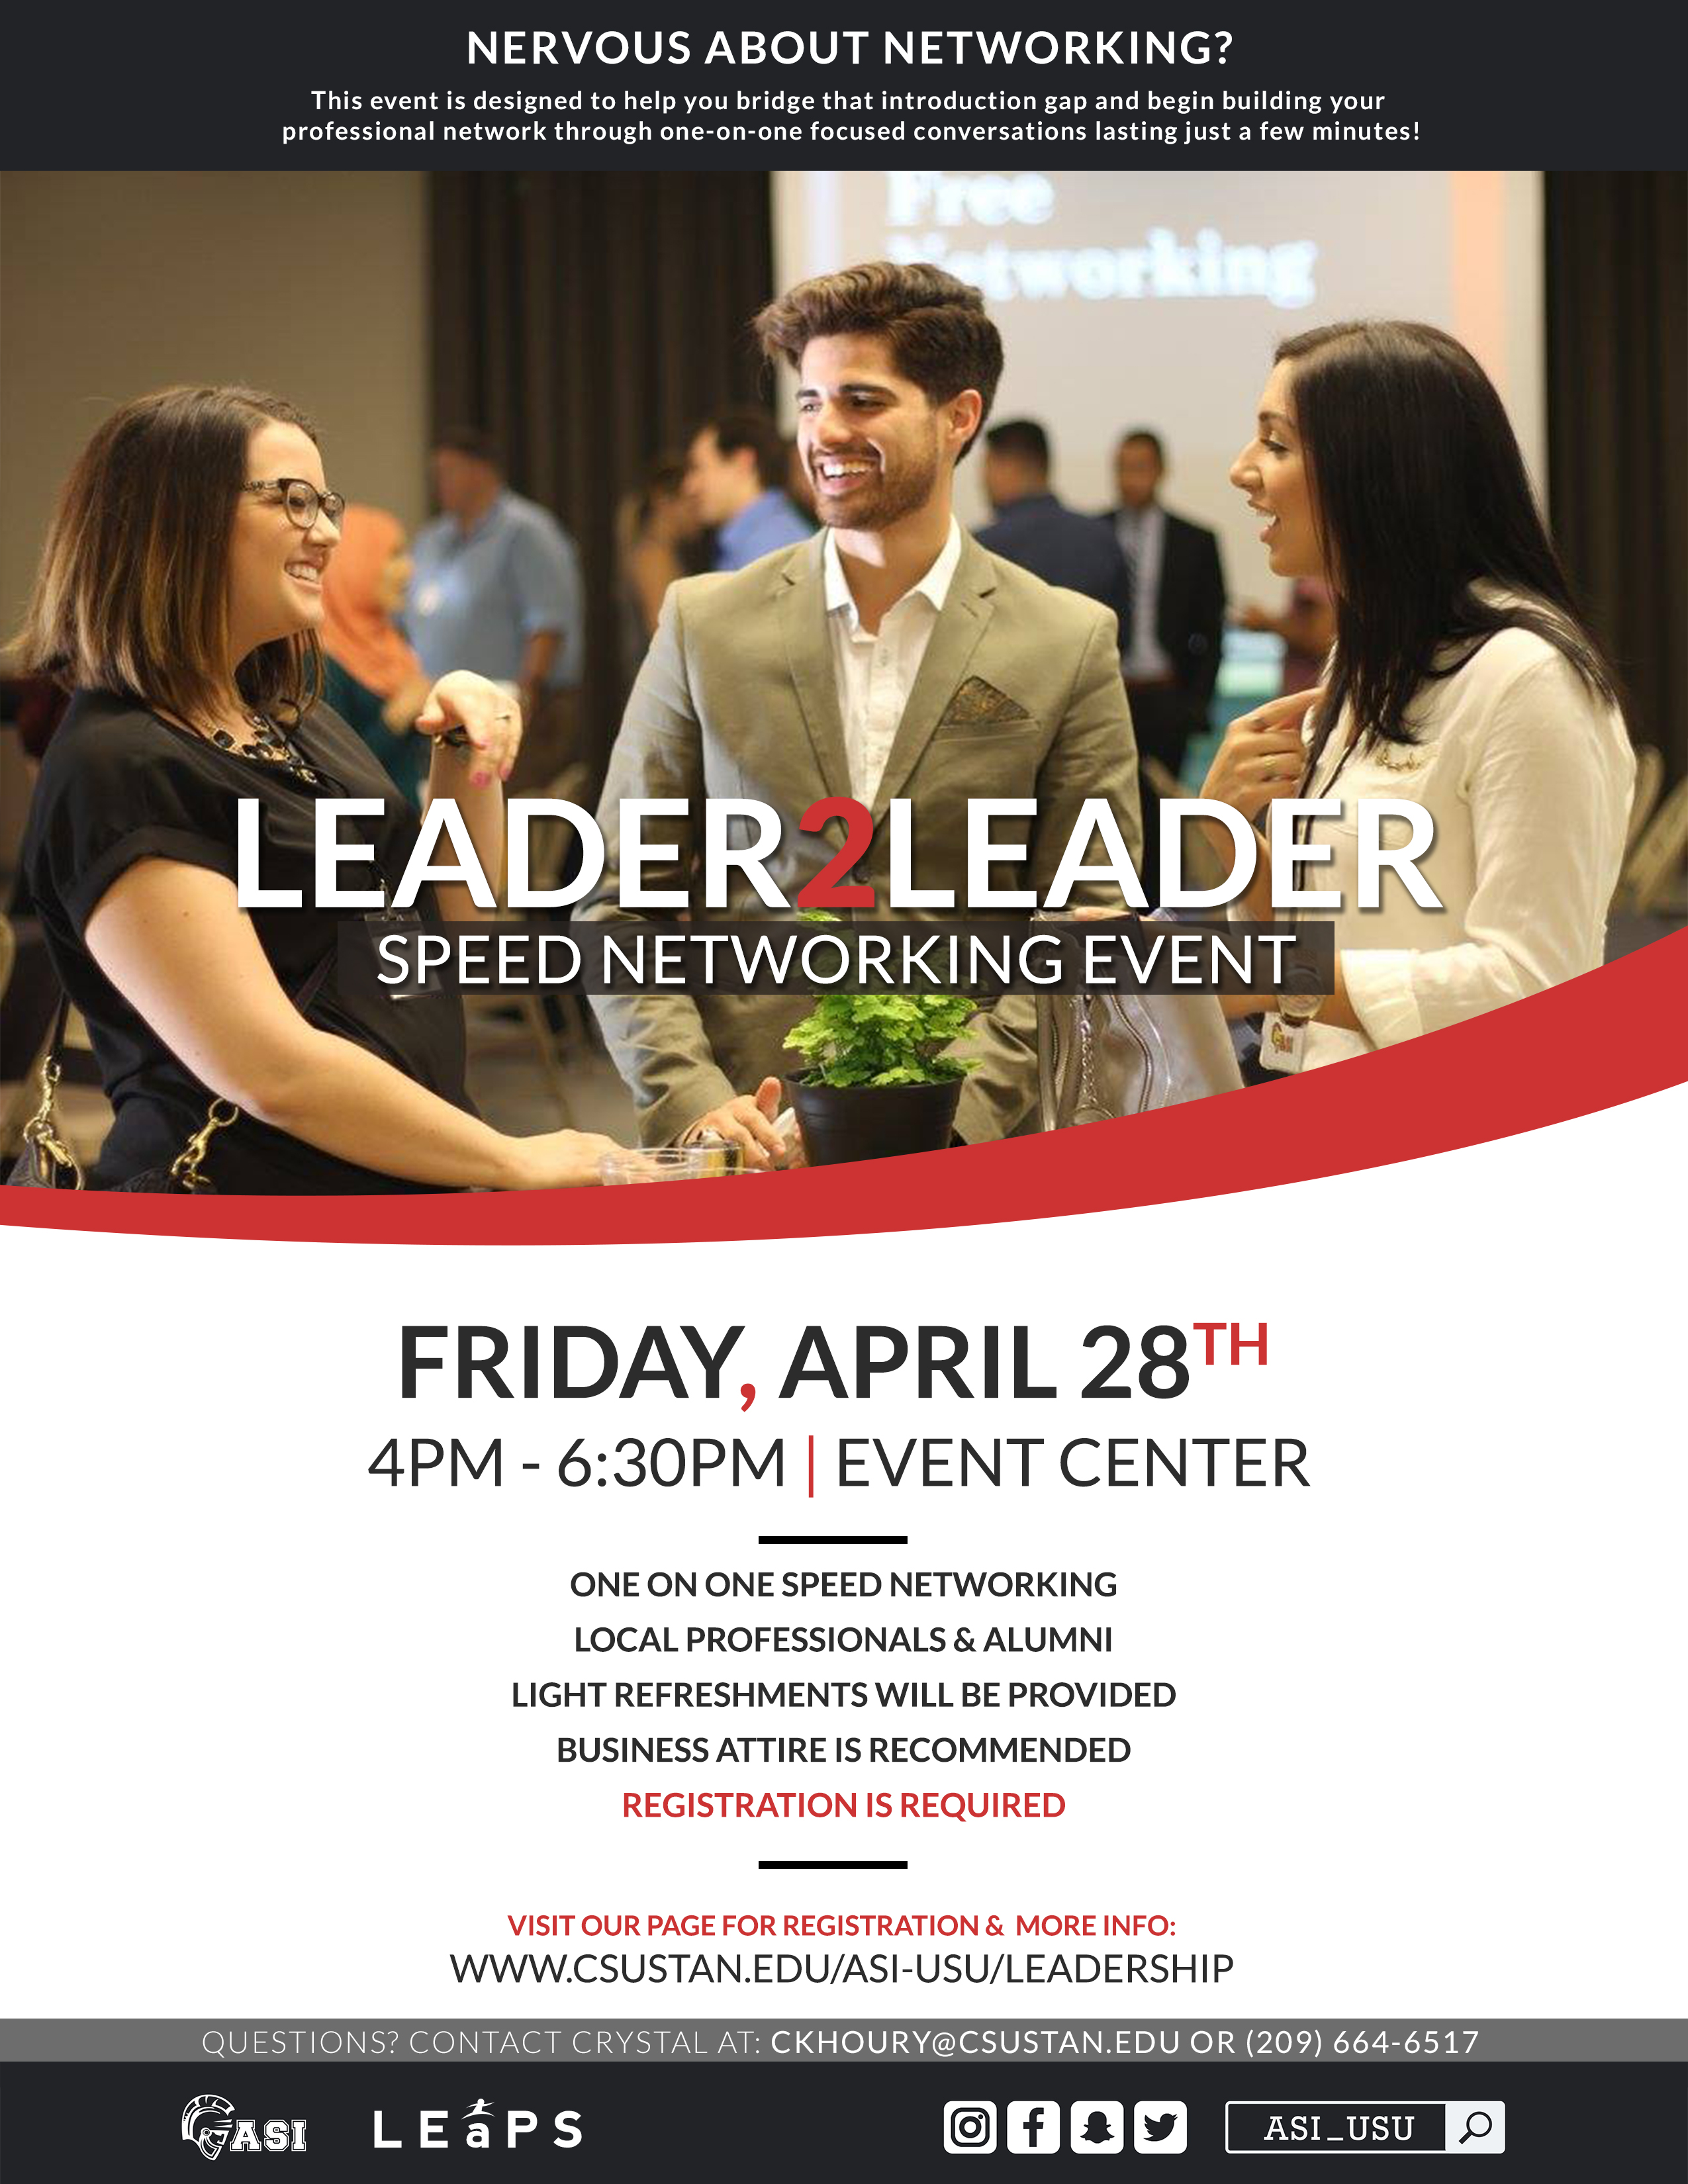 Leader 2 Leader speed networking event